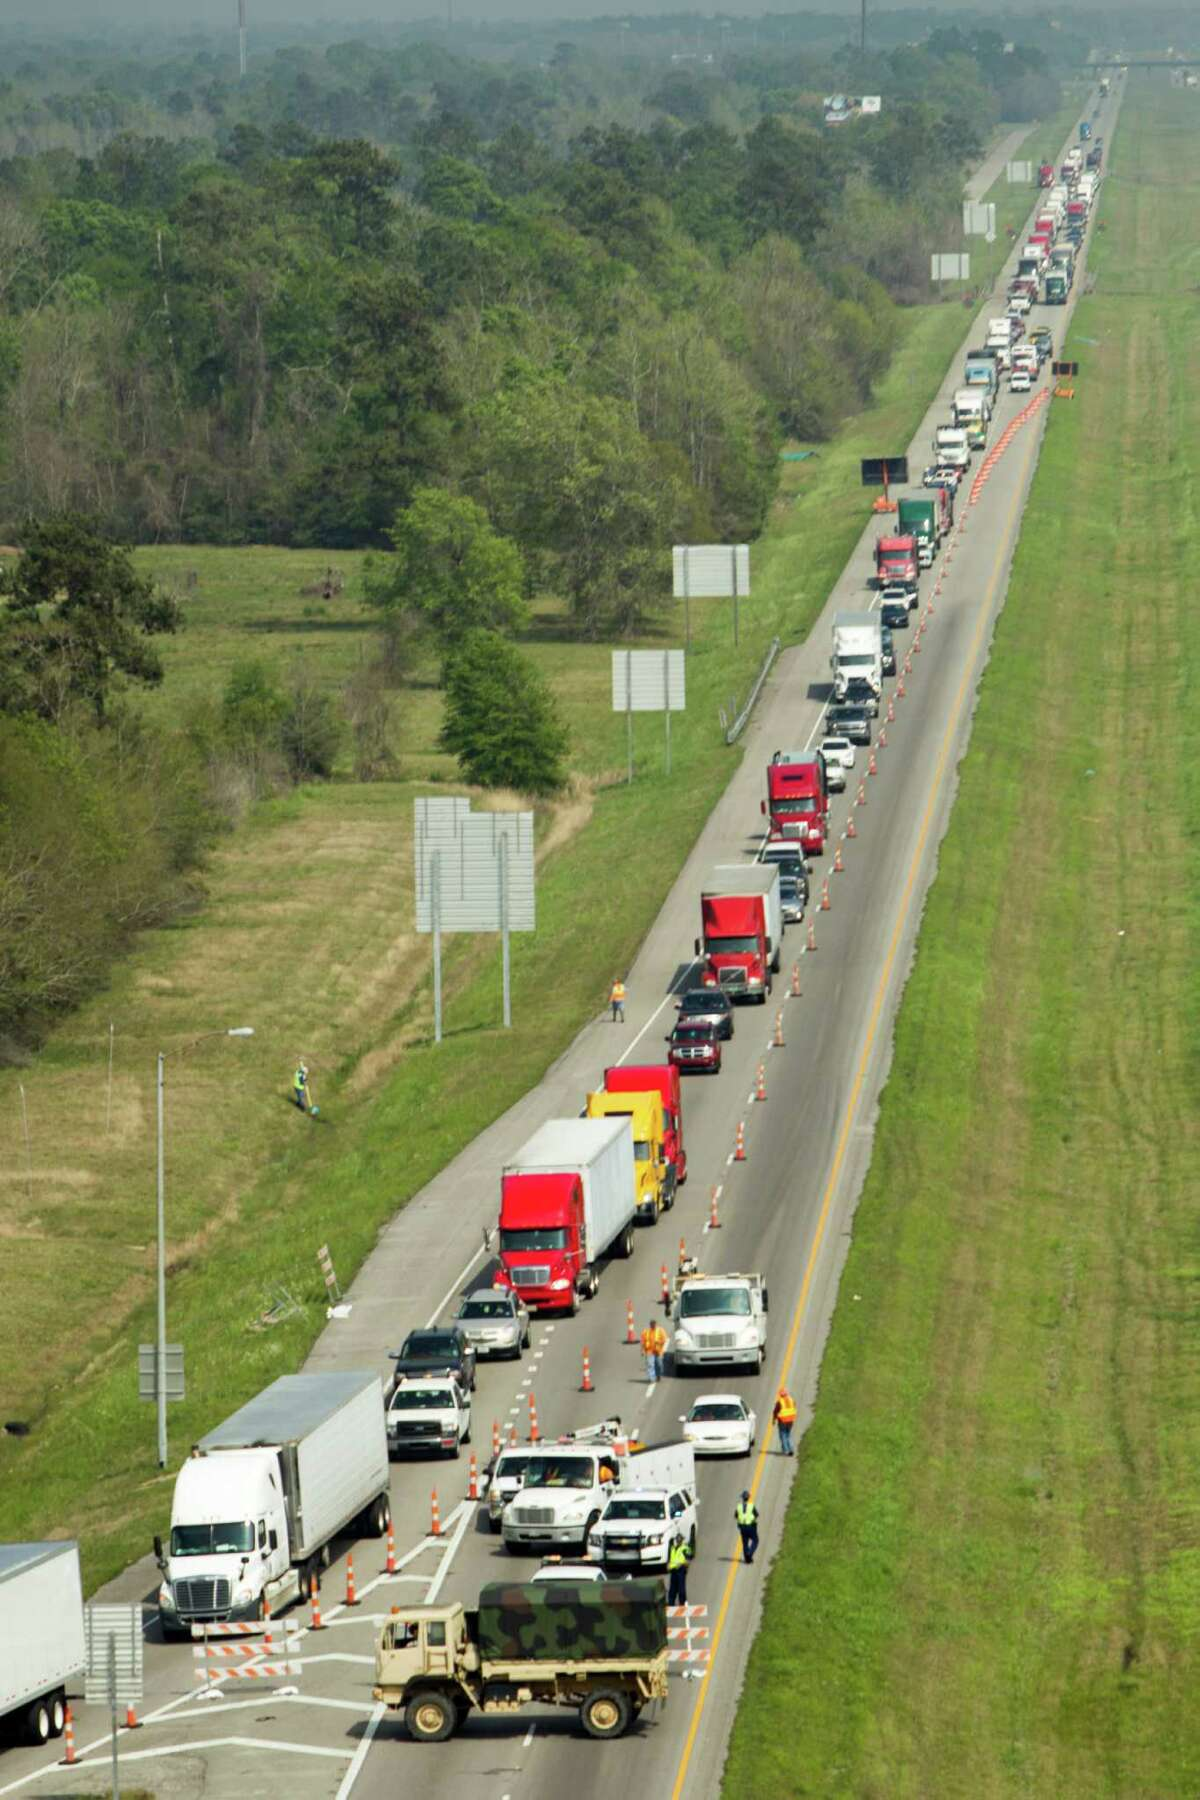 Traffic is diverted off of Interstate 10 in Vinton, La., as the highway was closed due to flood danger on Tuesday. Floodwaters stalled semis and backed up roads.